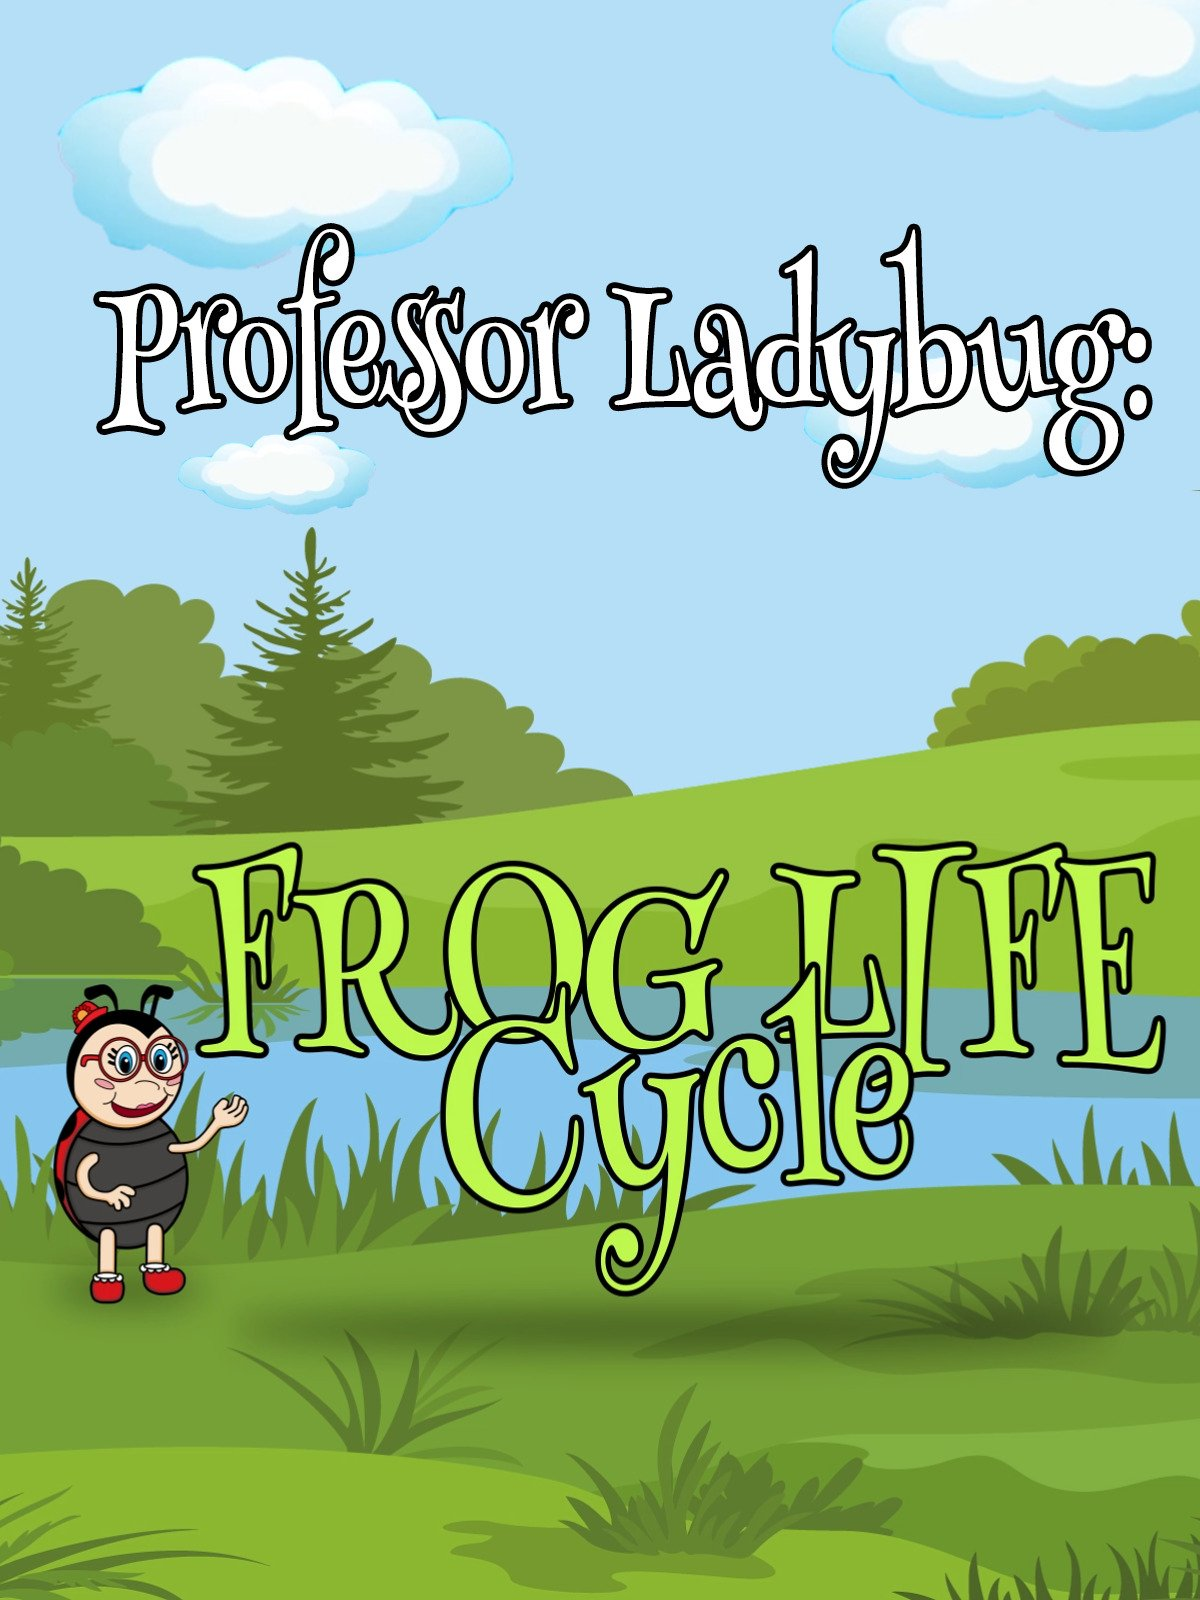 Professor Ladybug Teaches: Frog Life Cycle